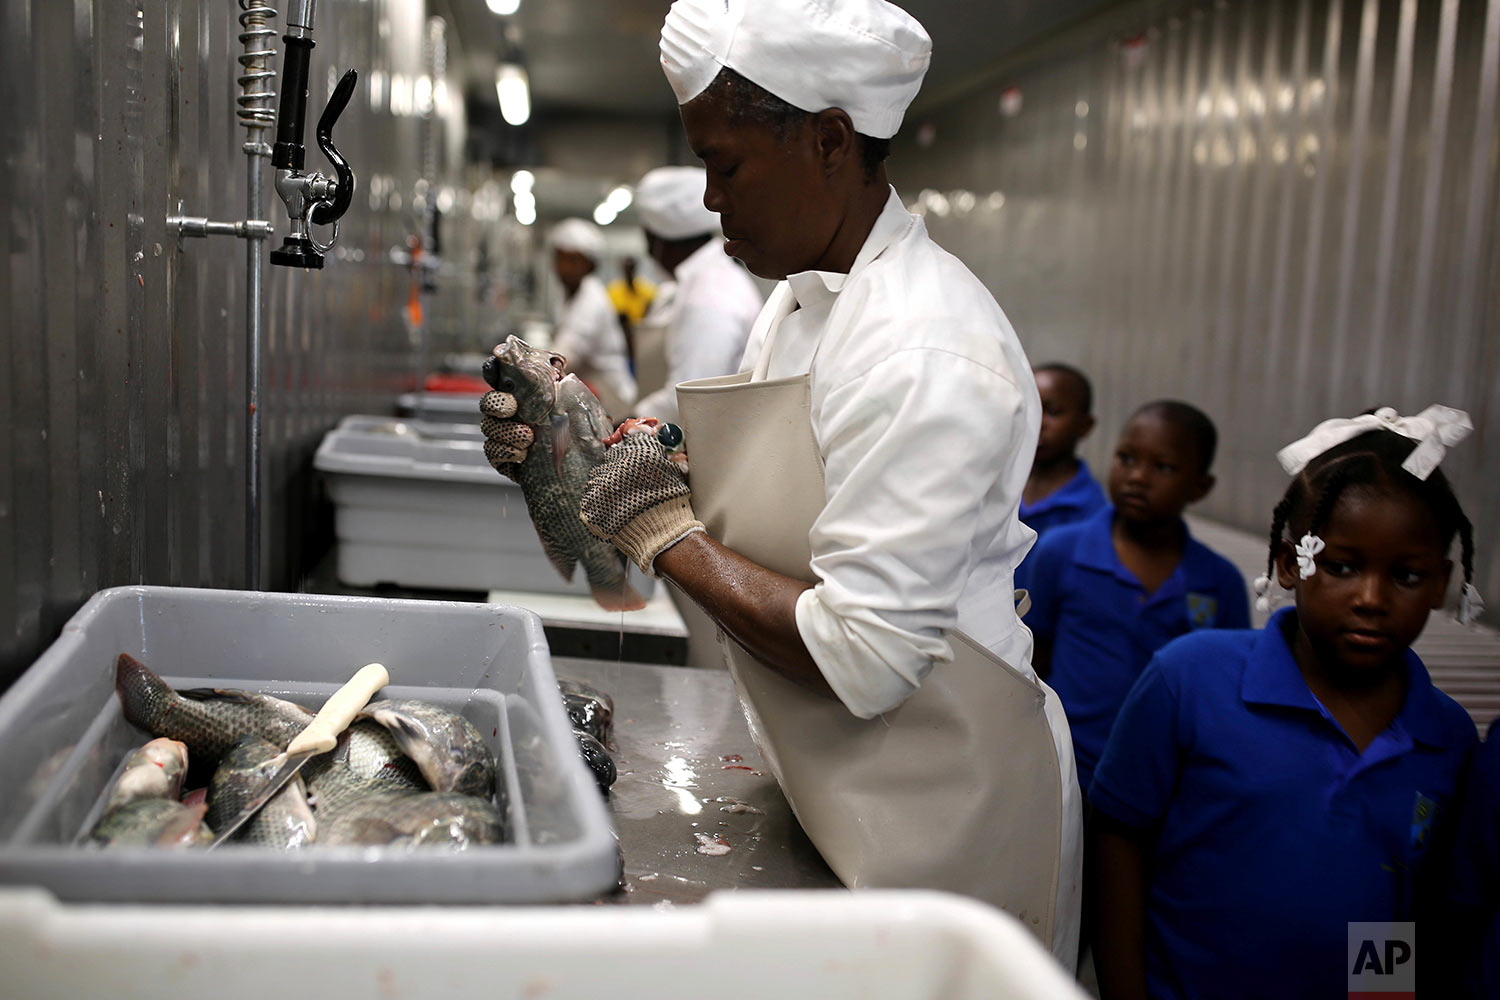 In this April 17, 2018 photo, a Taino Aqua Fish worker cleans tilapia as children take a field trip to the company on Lake Azuei in Fond Parisien, Haiti. One of the company's goals is to make fish affordable for all Haitians. (AP Photo/Dieu Nalio Chery)